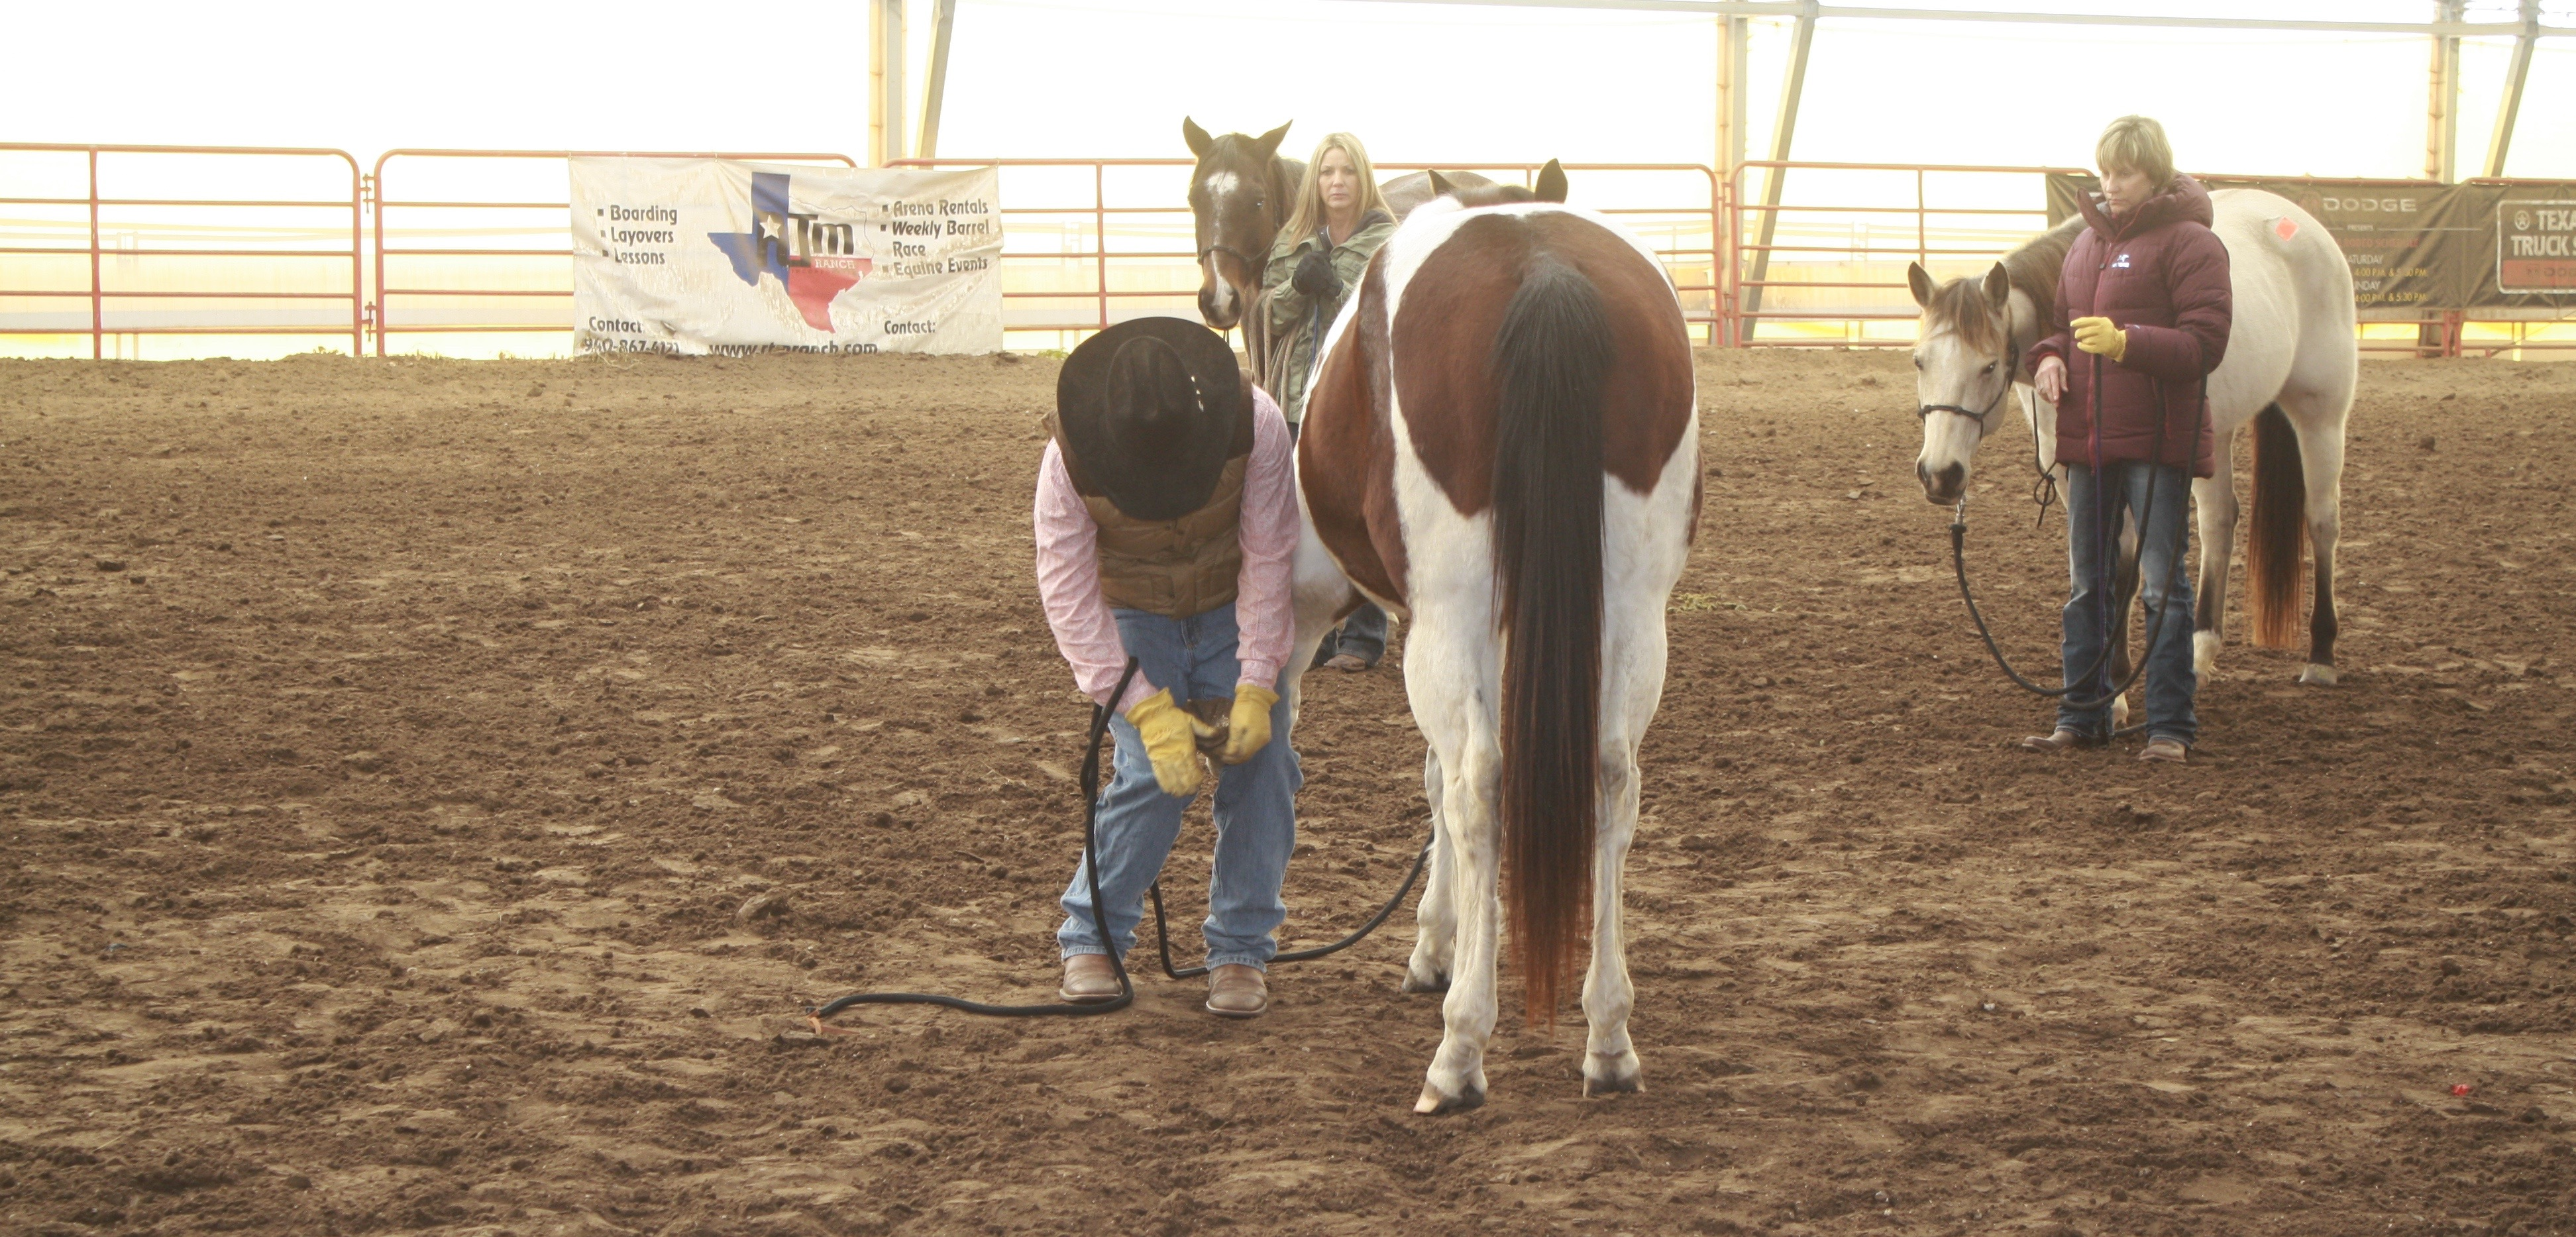 """I always believe you should be able to pick up your horse's feet quietly before asking your farrier to do it.""- Steve Stevens (Photo courtesy of Amanda Stevens)"